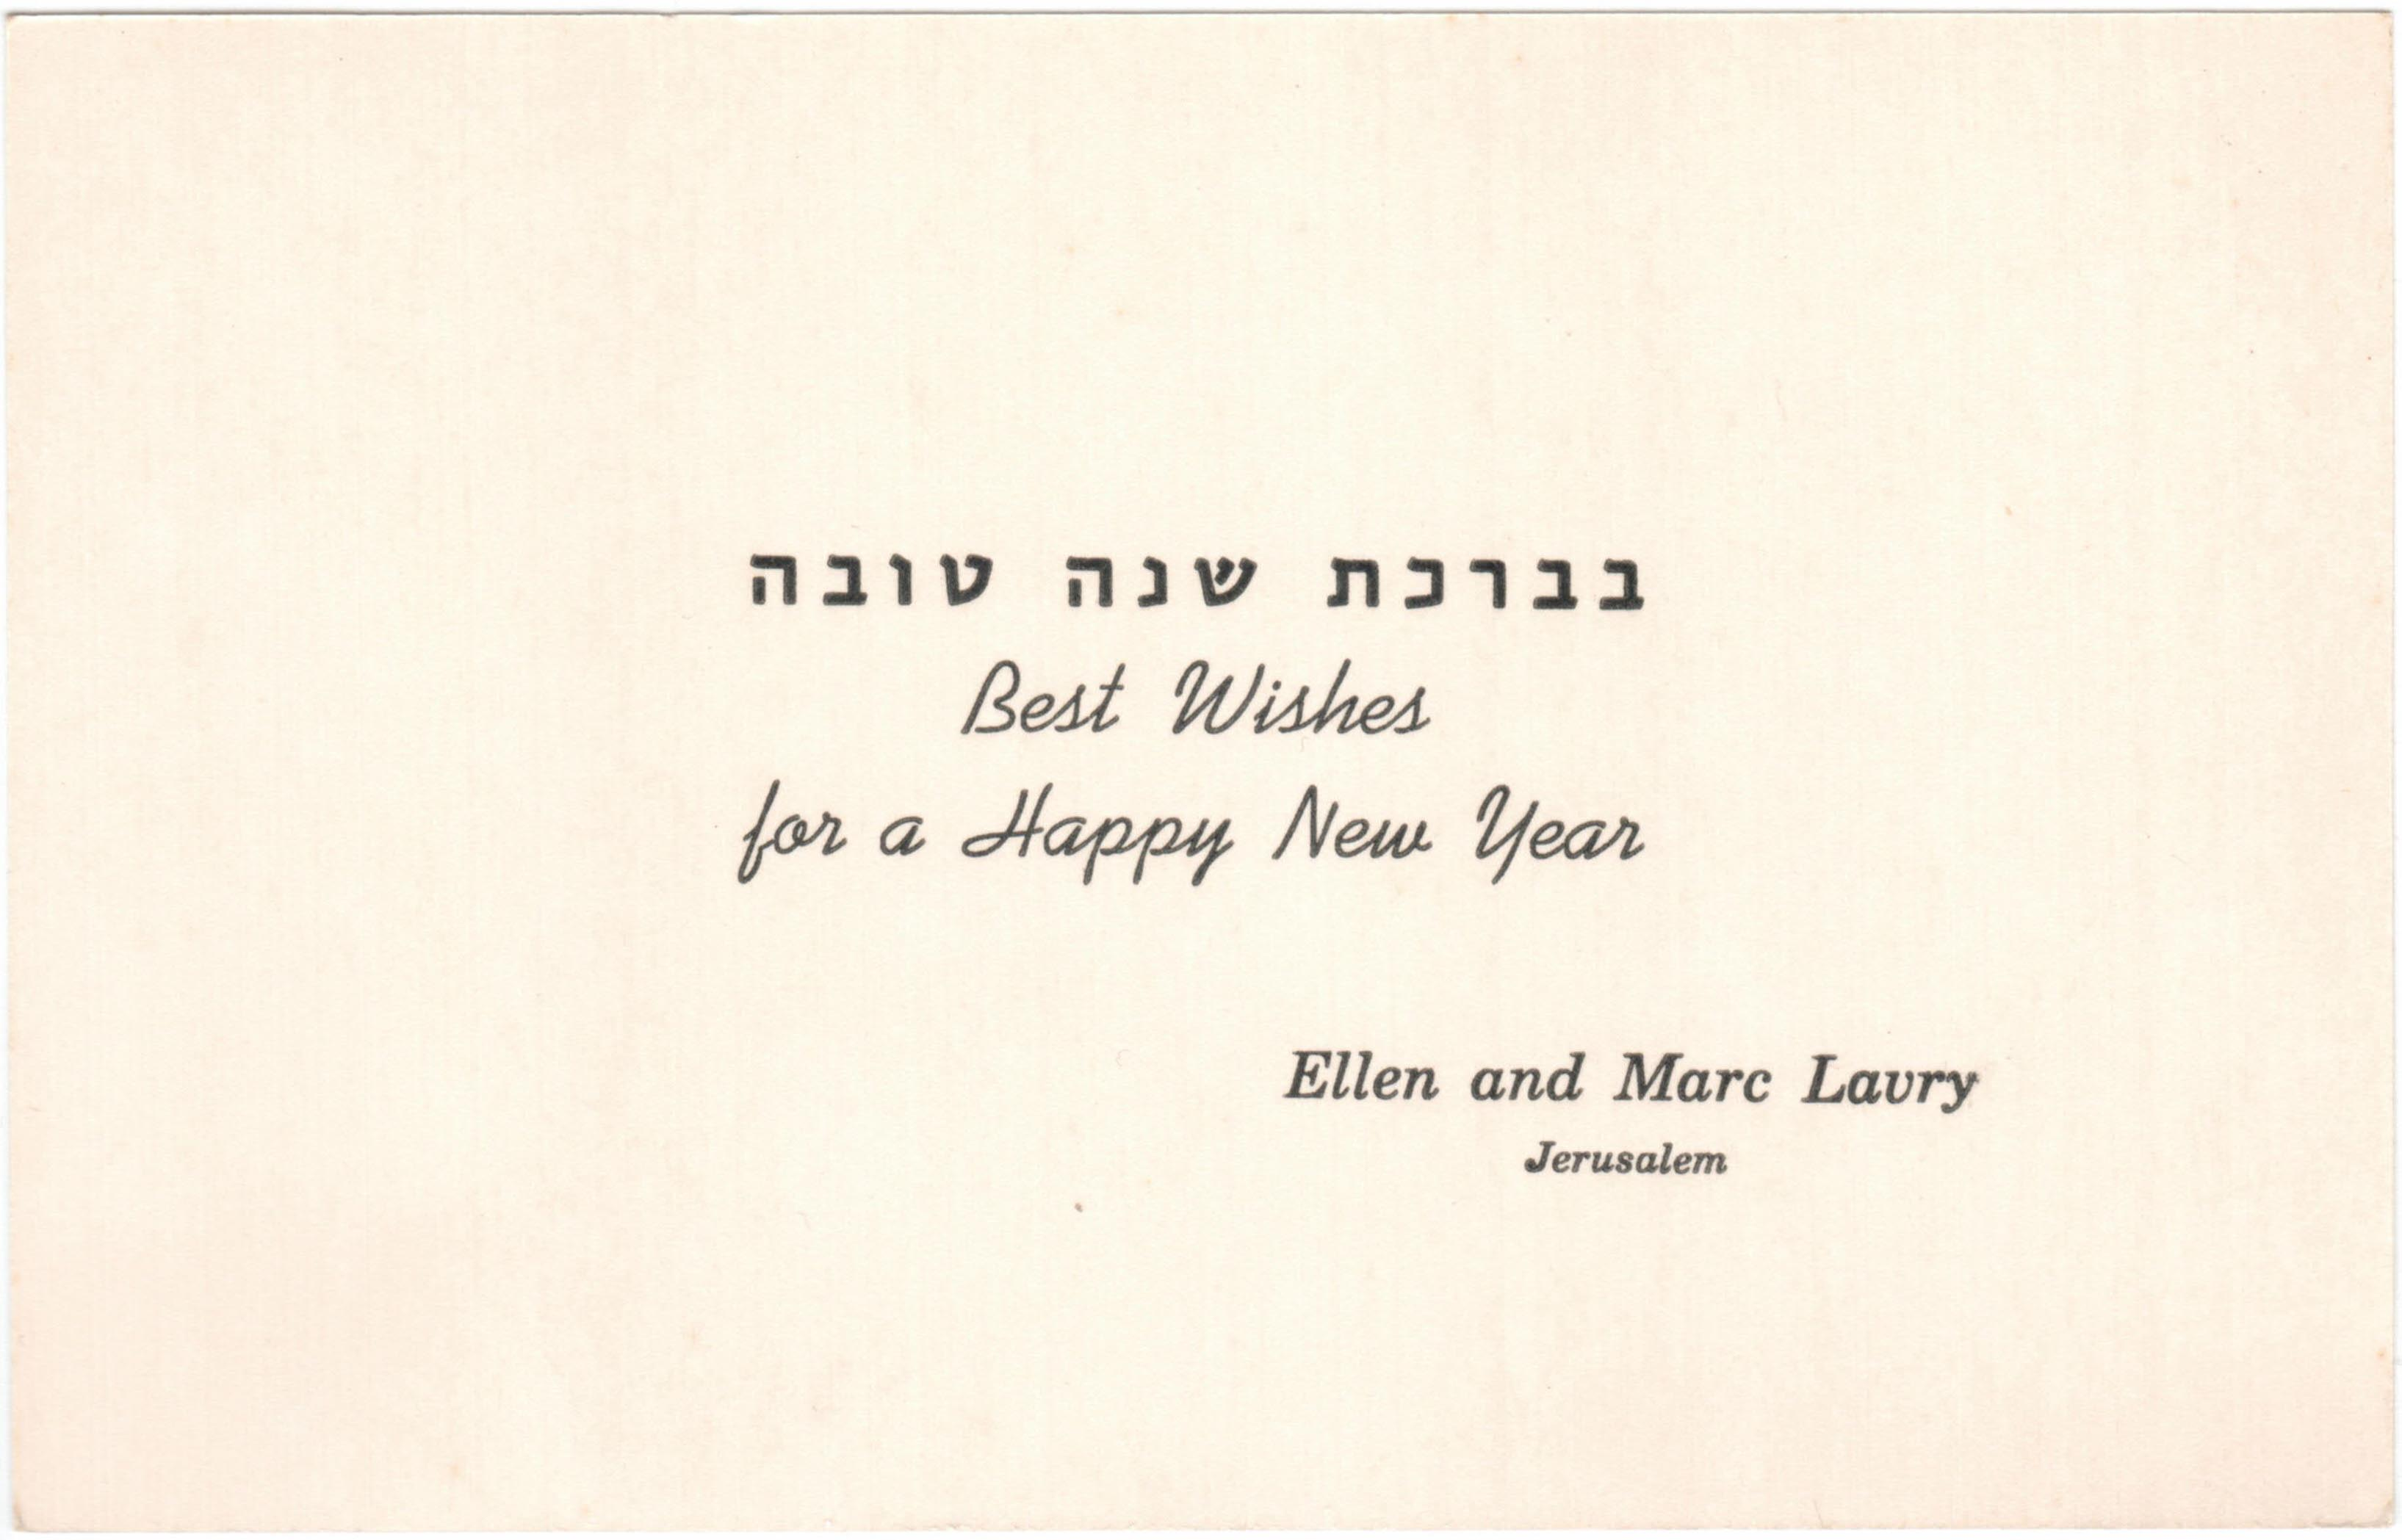 a personalized new year greeting card of lavry and his wife from the late fifties